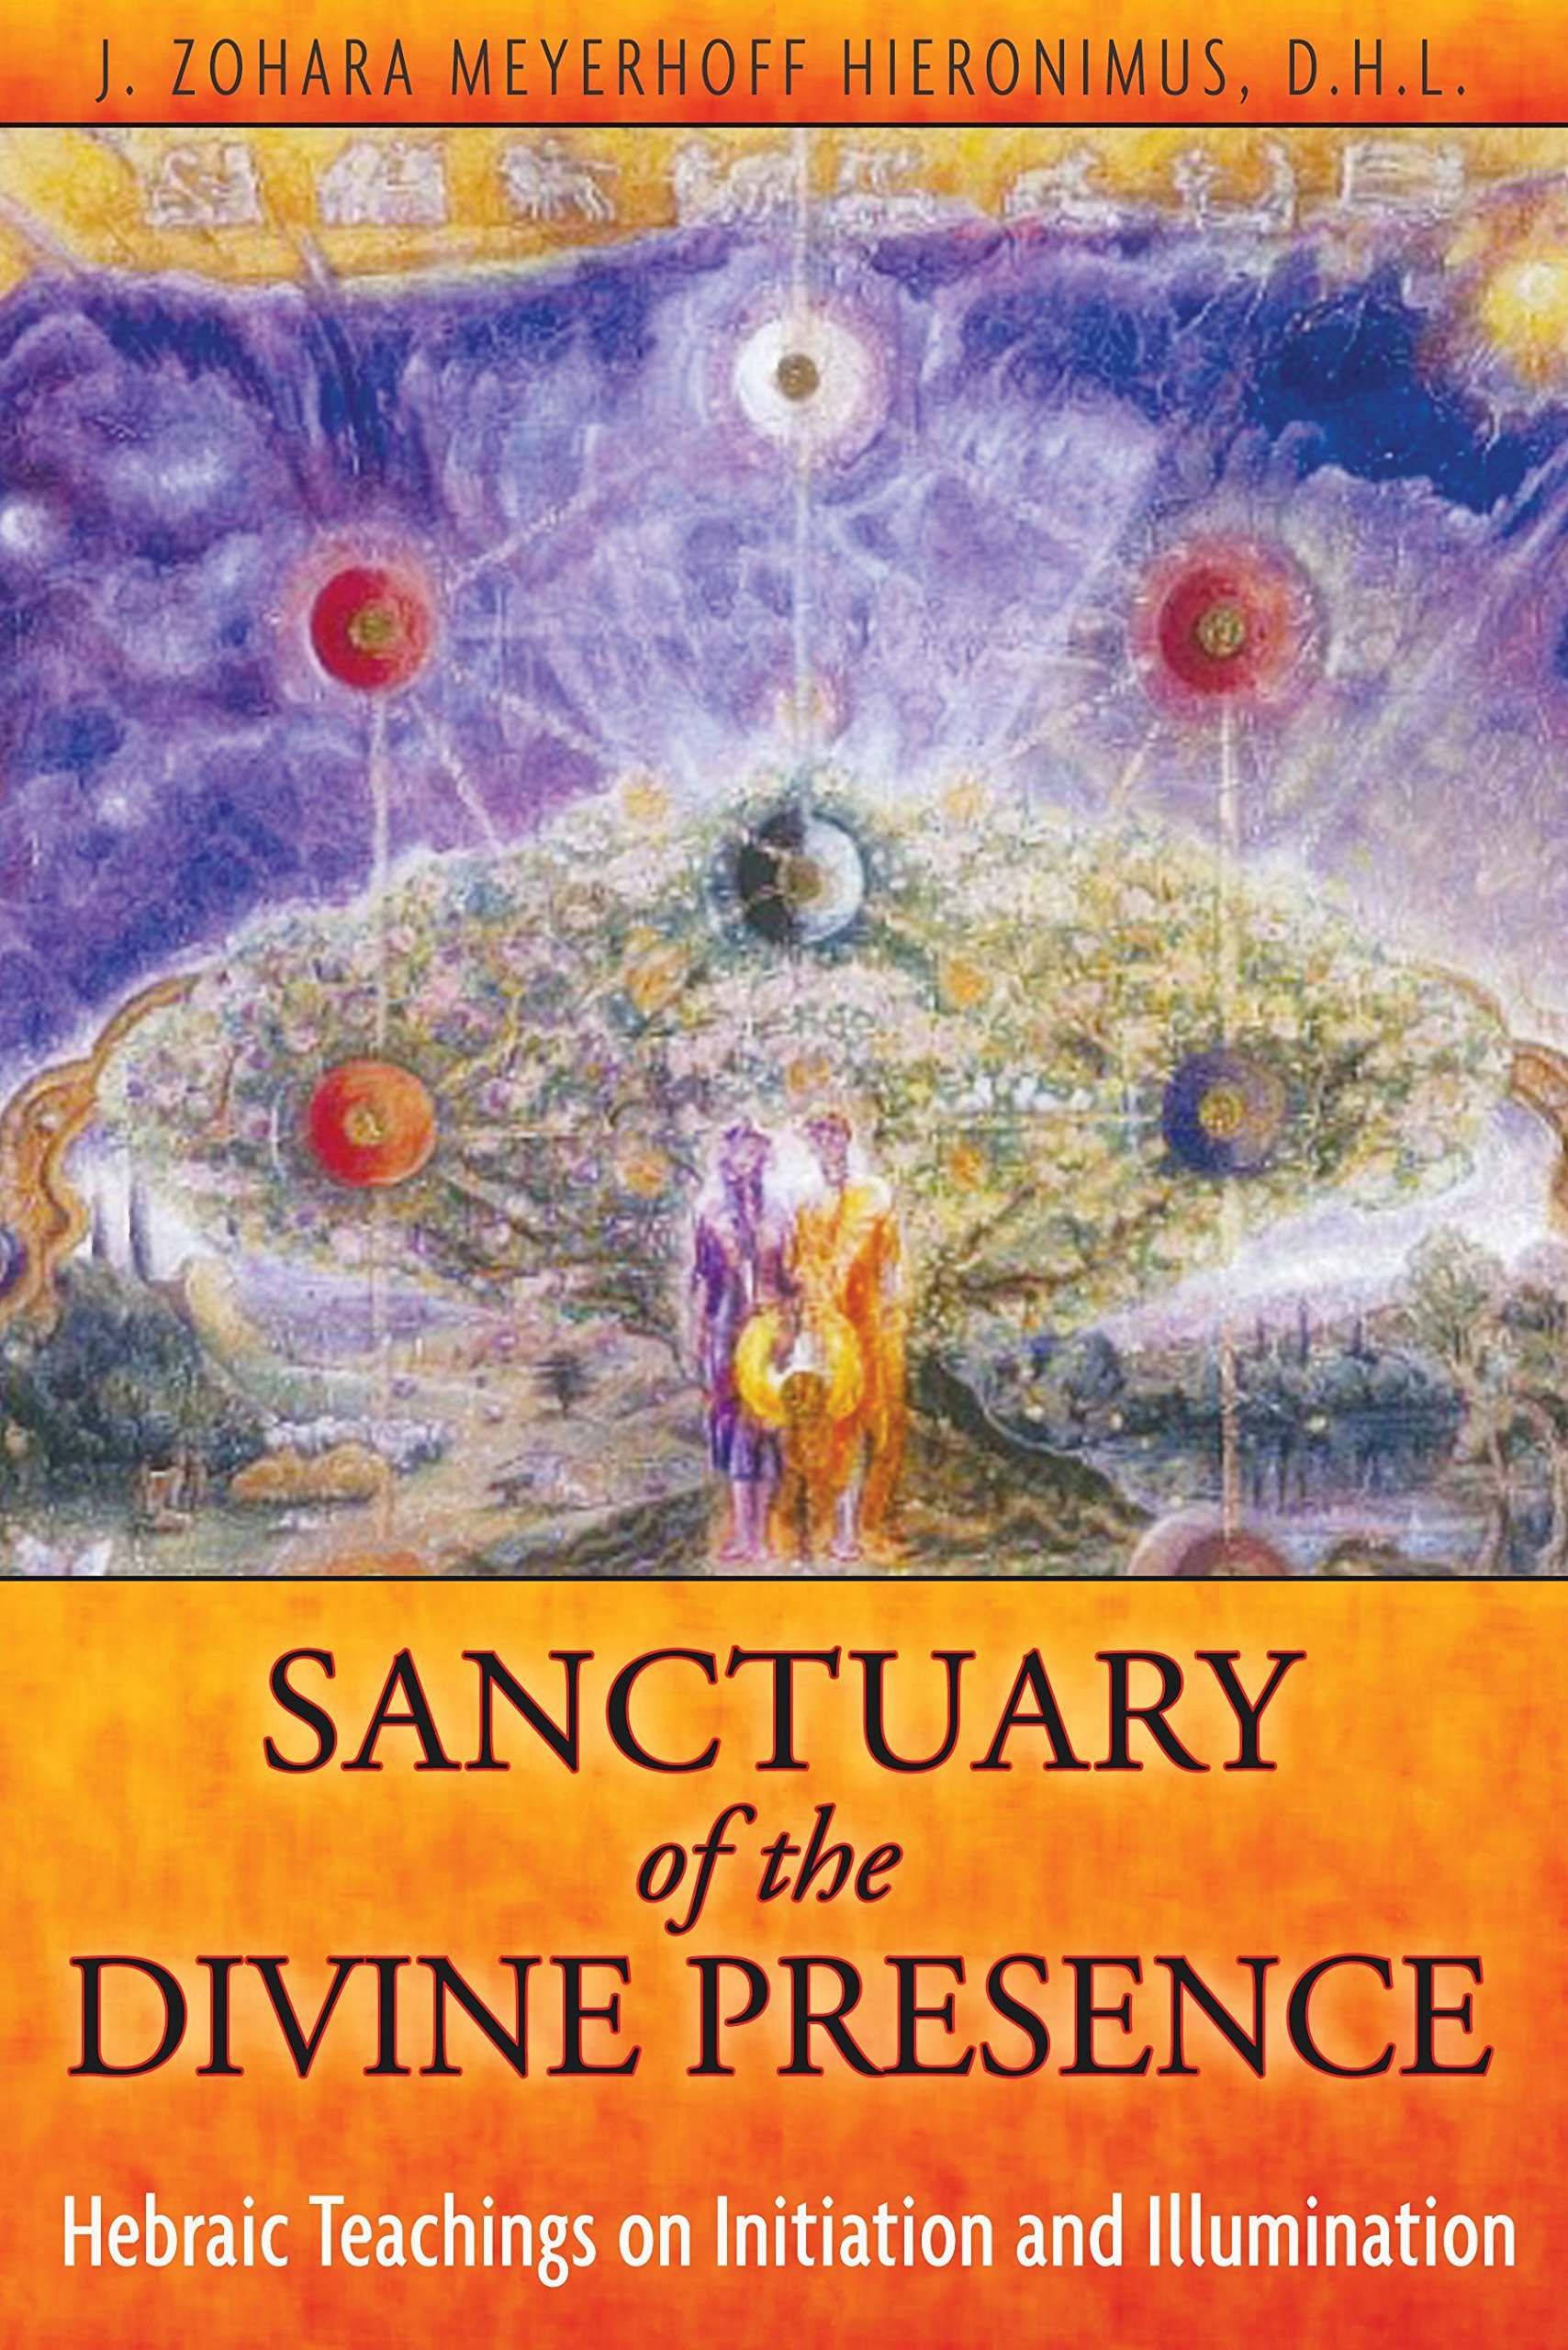 Sanctuary of the Divine Presence: Hebraic Teachings on Initiation and Illumination